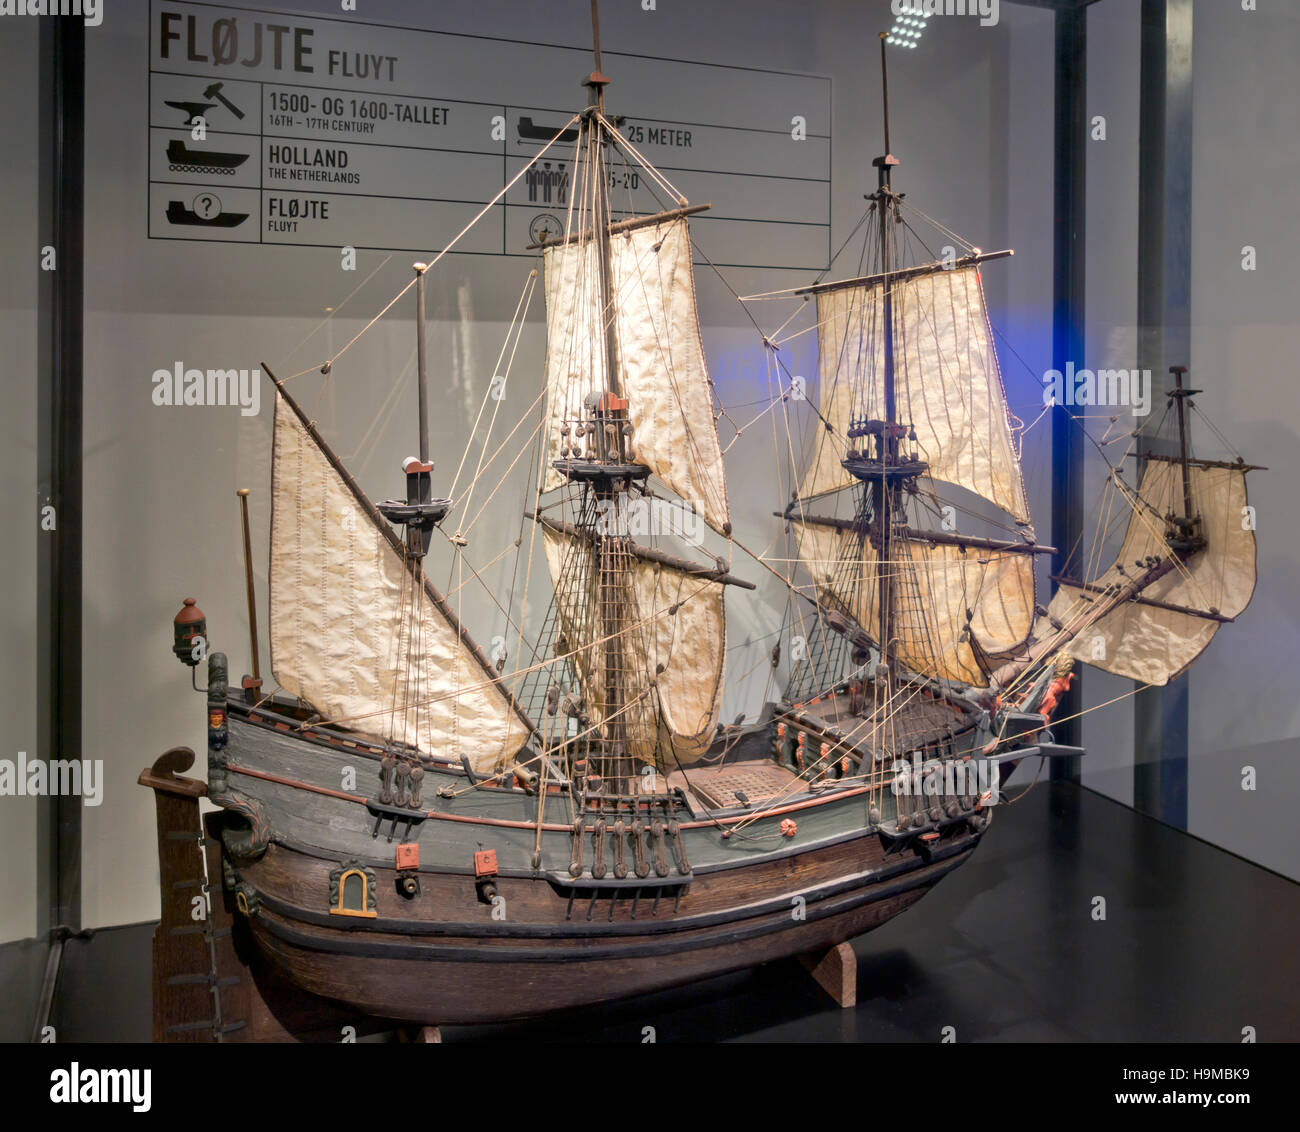 Model of Dutch fluyt 16th century sailing ship designed for cheap, efficient transoceanic delivery. Maritime Museum - Stock Image